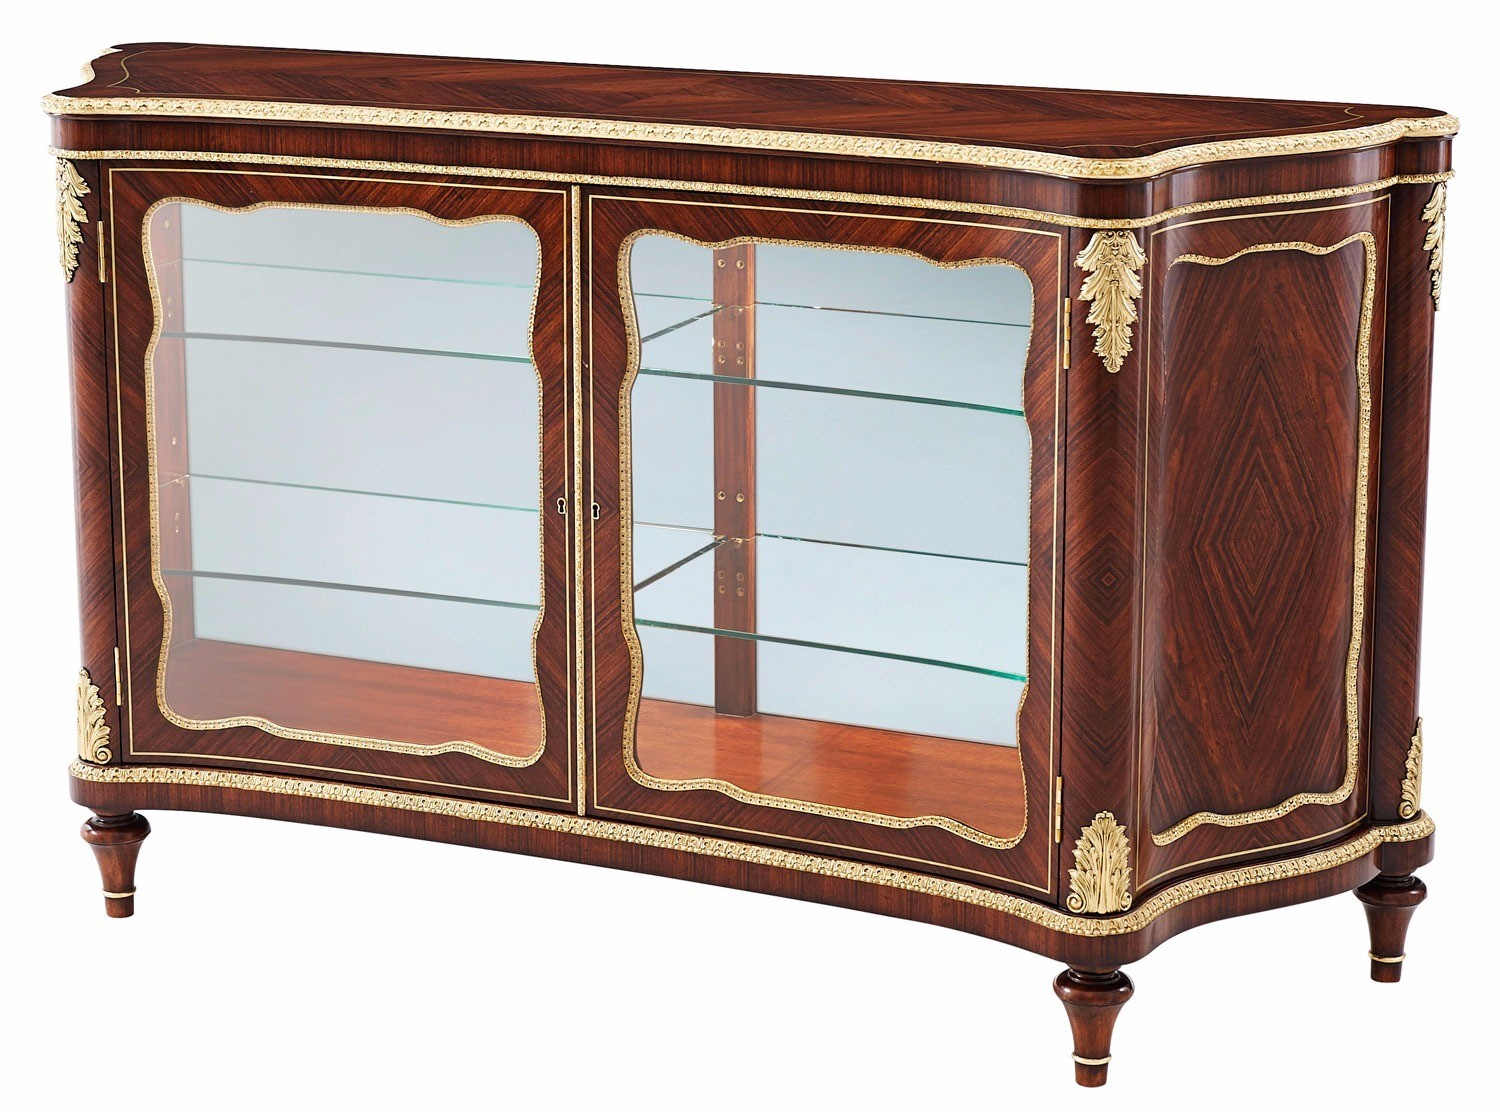 Granadillo Serpentine Display Cabinet